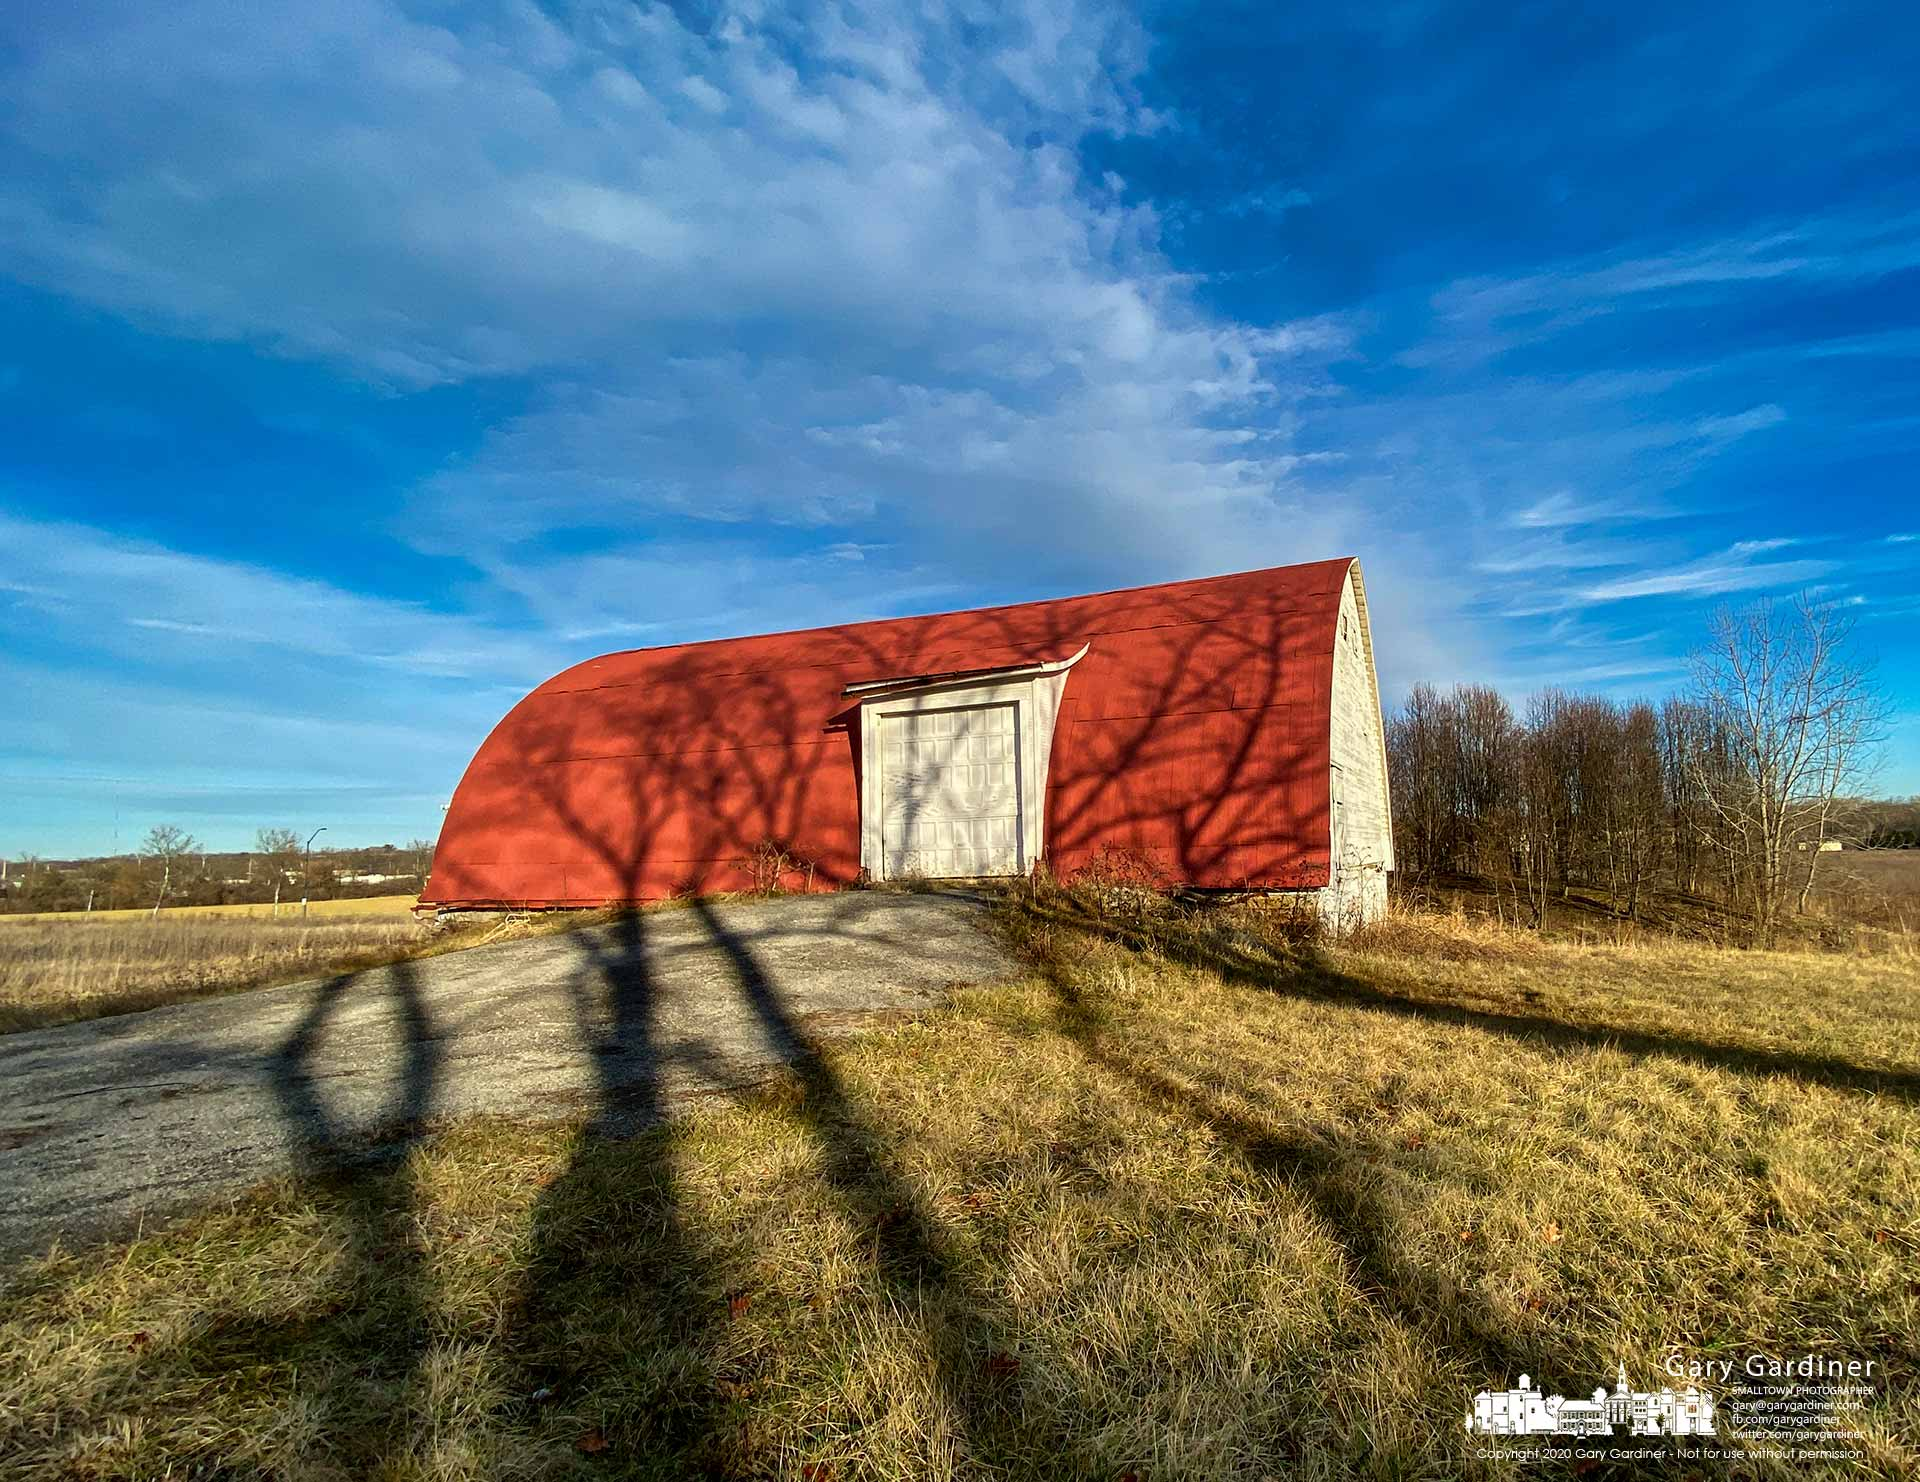 Shadows from the walnut trees behind the farmhouse on the Braun Farm cast themselves in unusual shapes toward the barn on a warm winter afternoon. My Final Photo for Jan. 6, 2020.